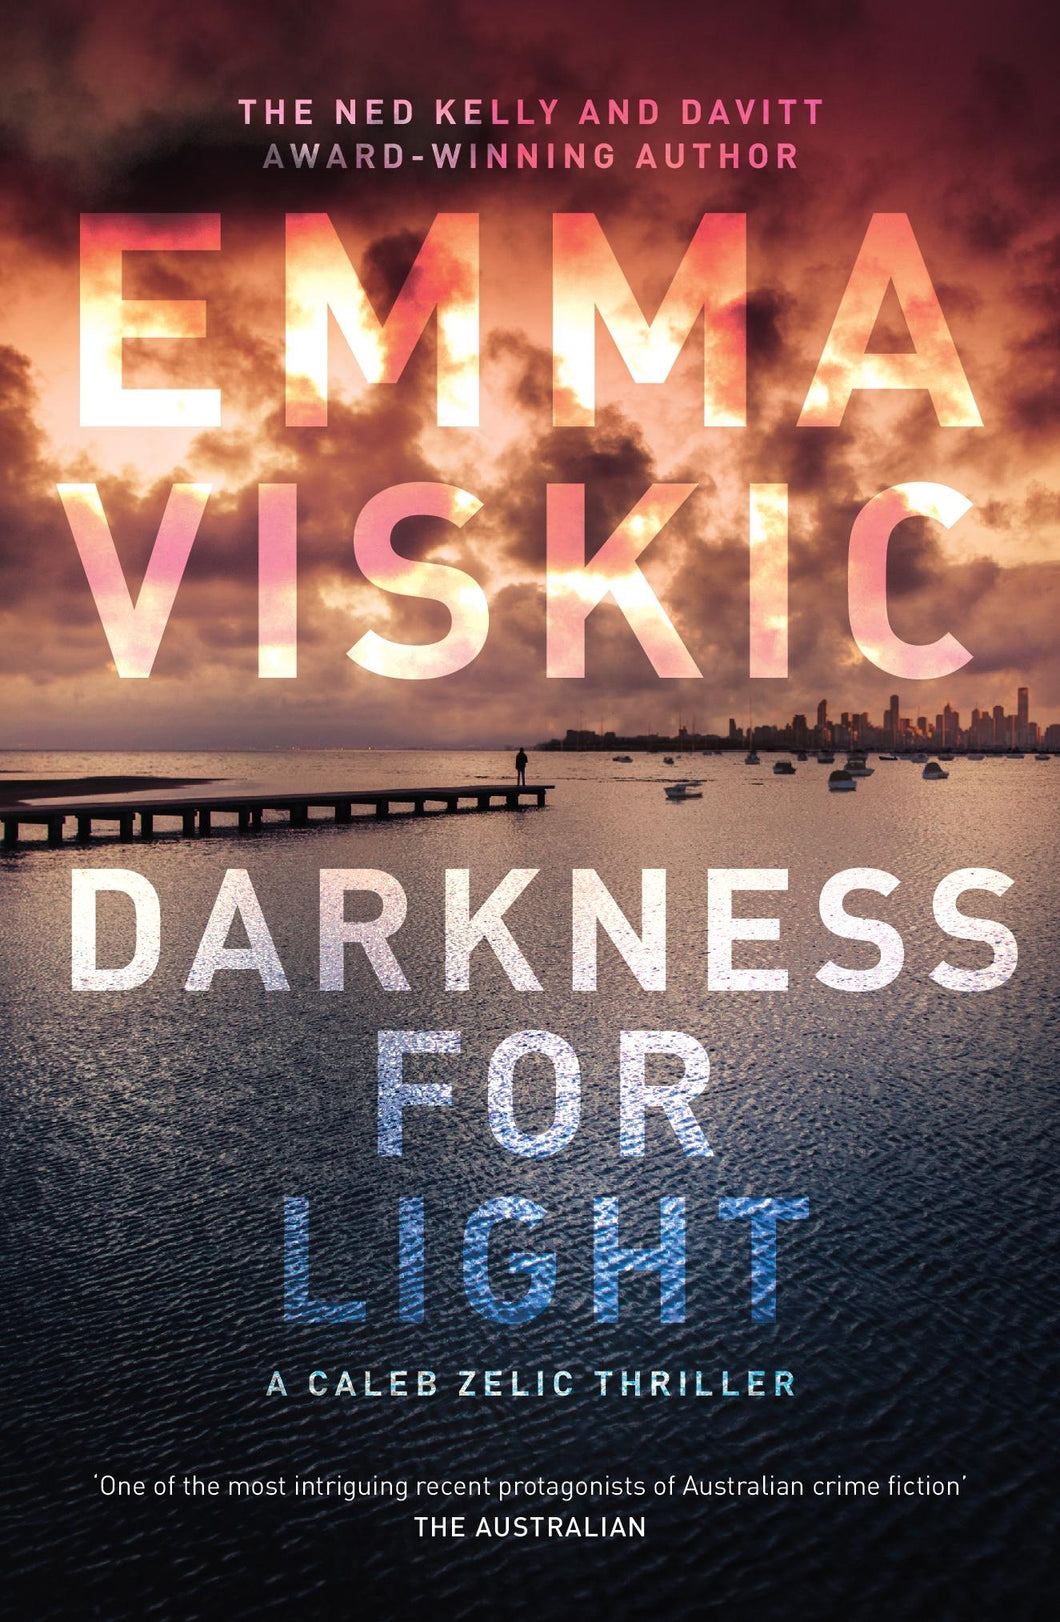 Darkness for Light - A Caleb Zelic Thriller